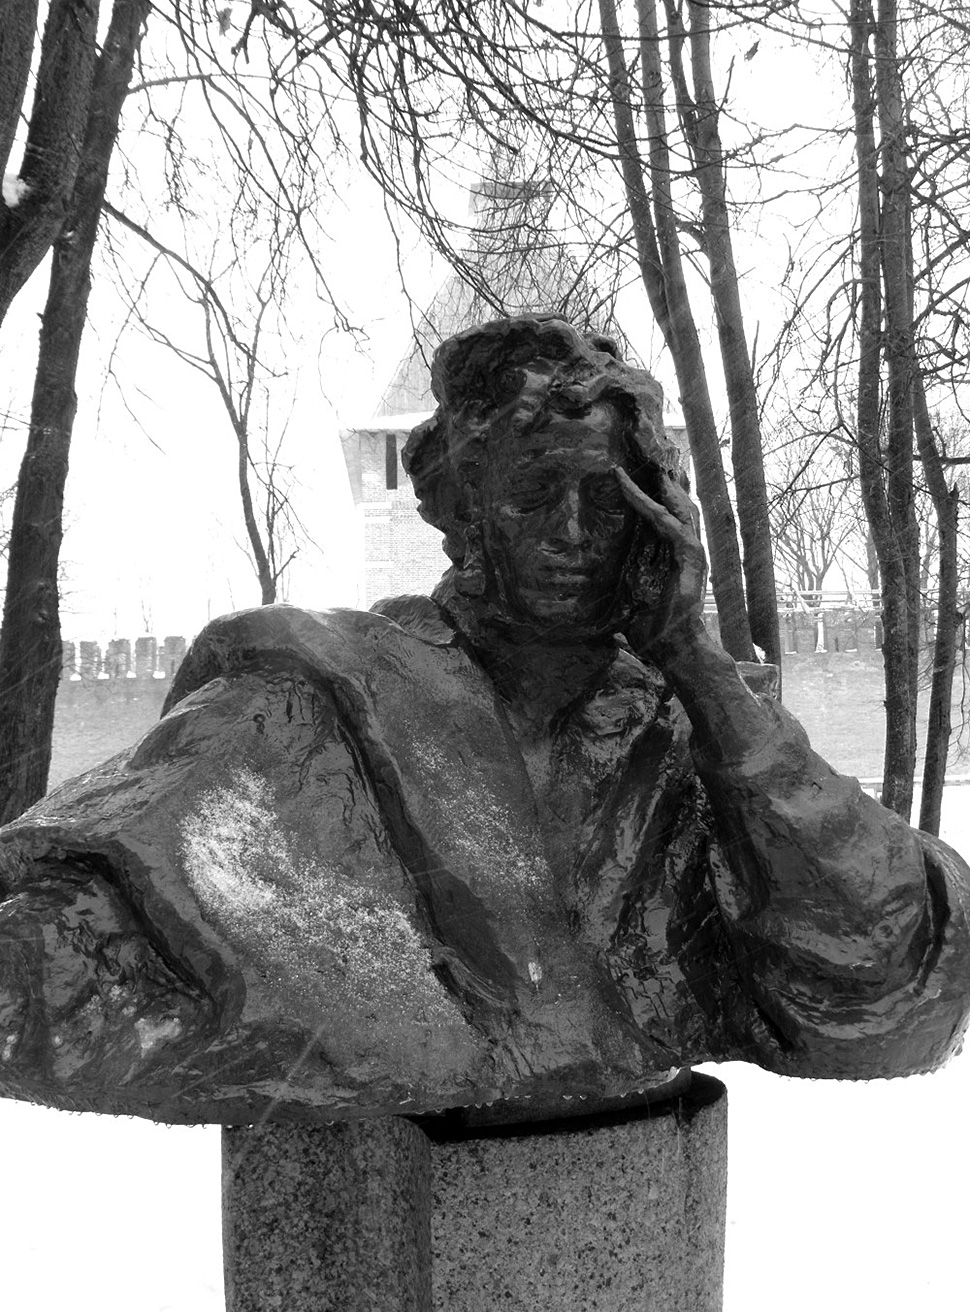 Smolensk: Pushkin's pensive bust stays behind the Kremlin's walls.